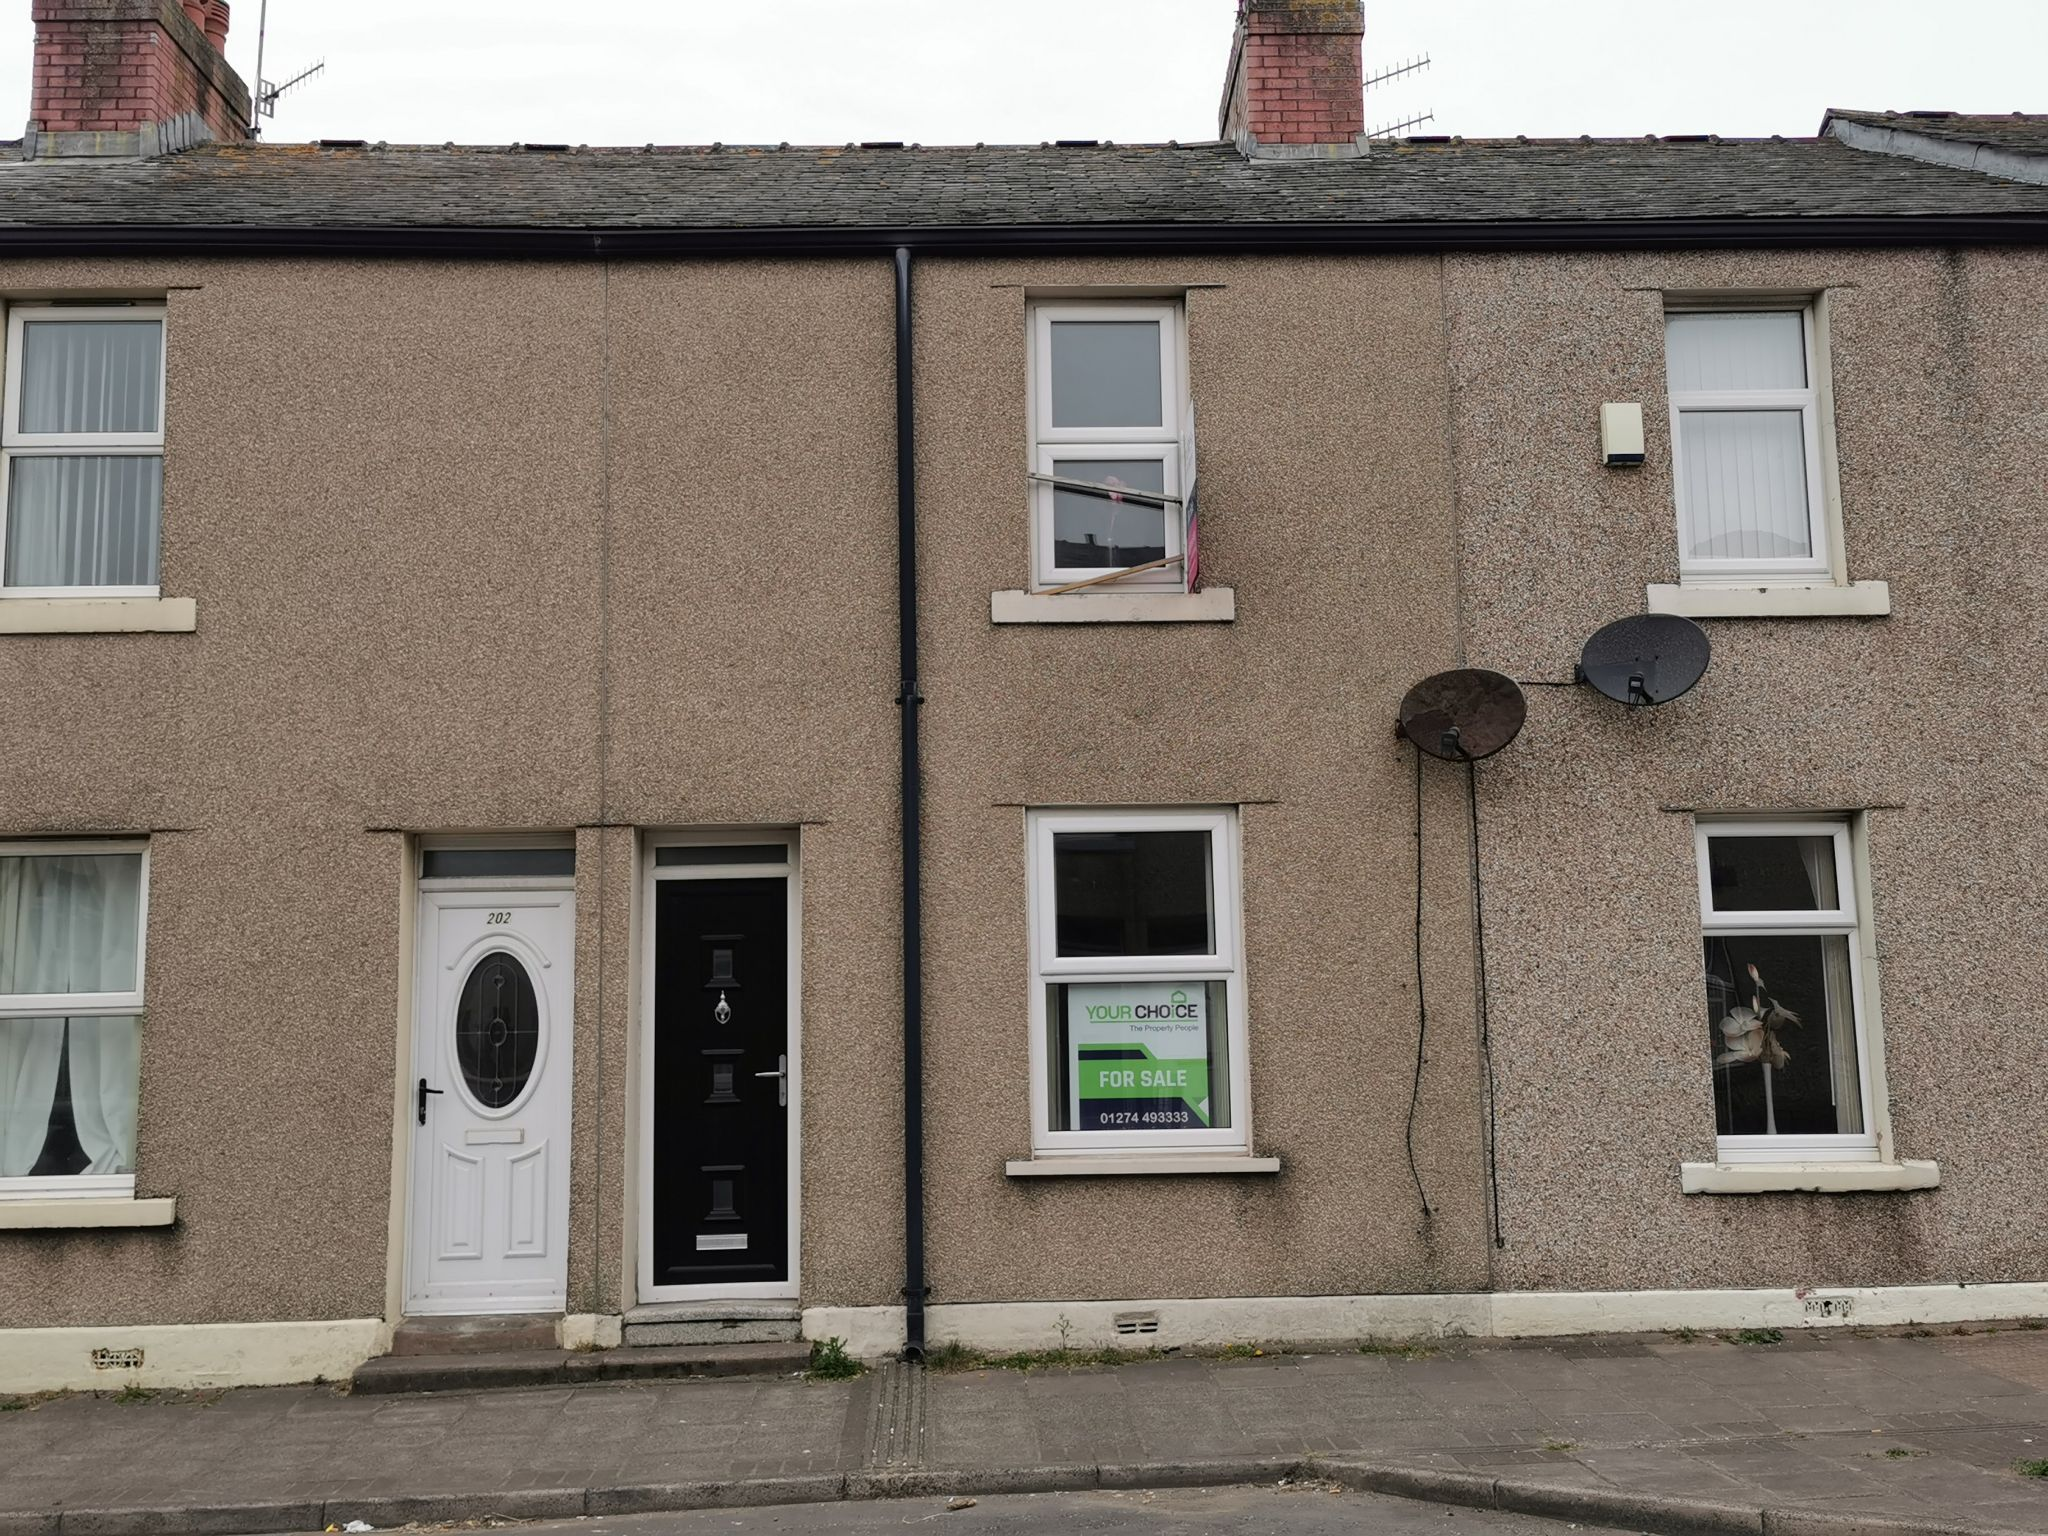 2 bedroom mid terraced house For Sale in Allerdale - Photograph 12.